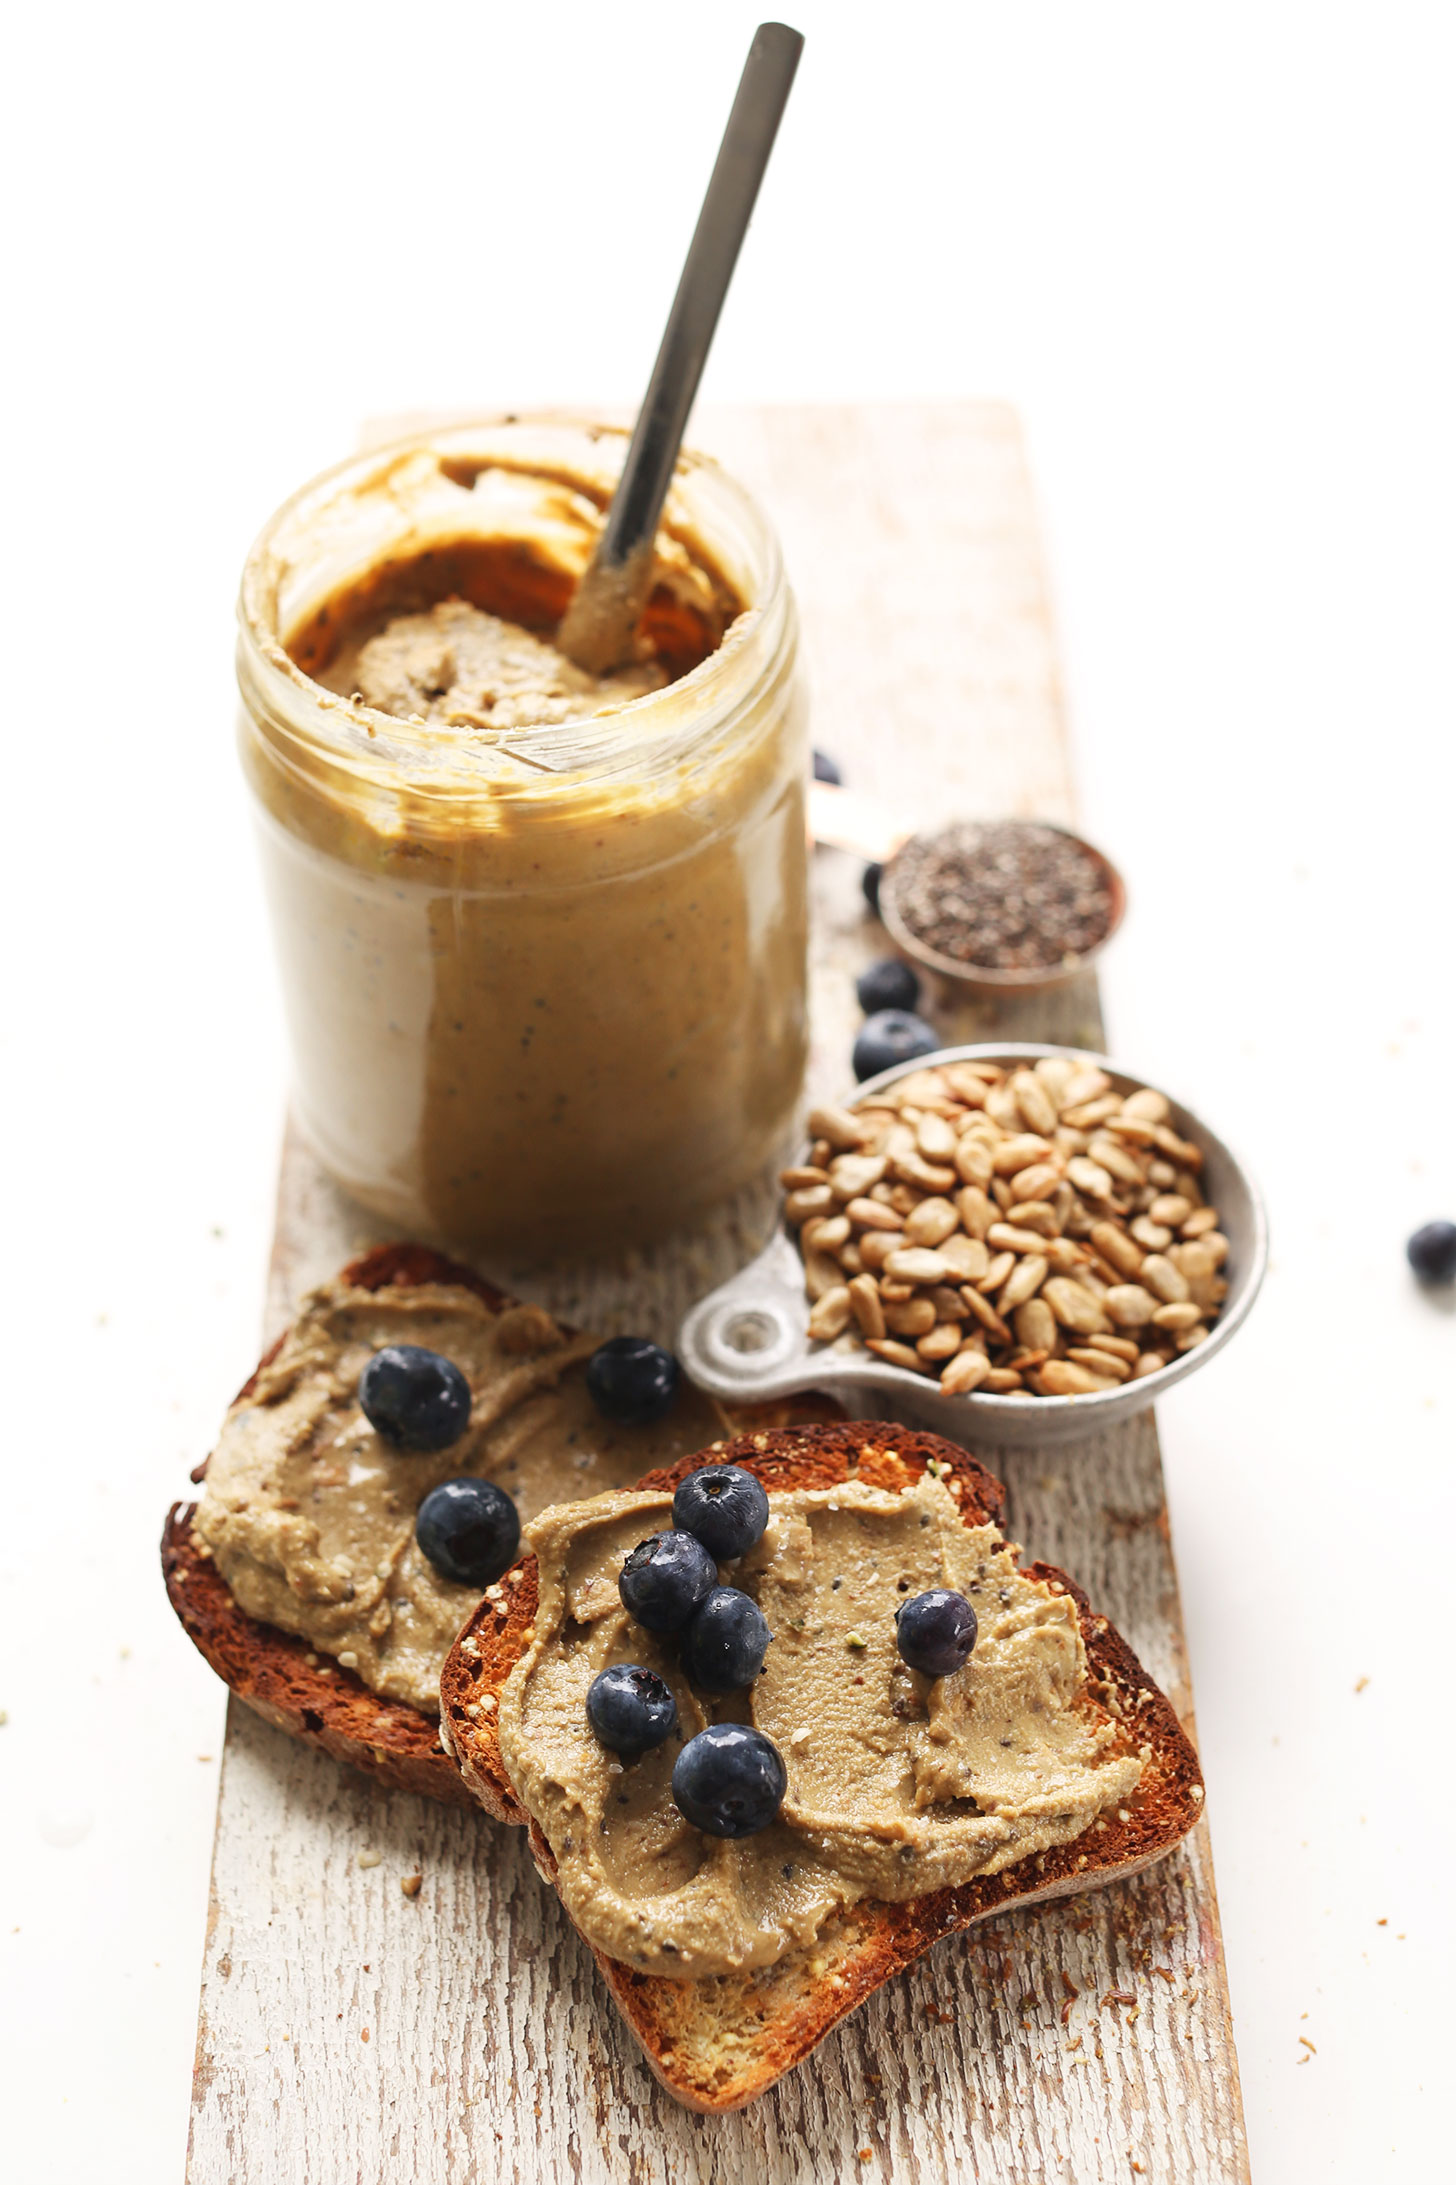 SUNFLOWER SEED BUTTER with chia, flax, pumpkin and hemp! #sunbutter #recipe #vegan #glutenfree #recipe #paleo #minimalistbaker